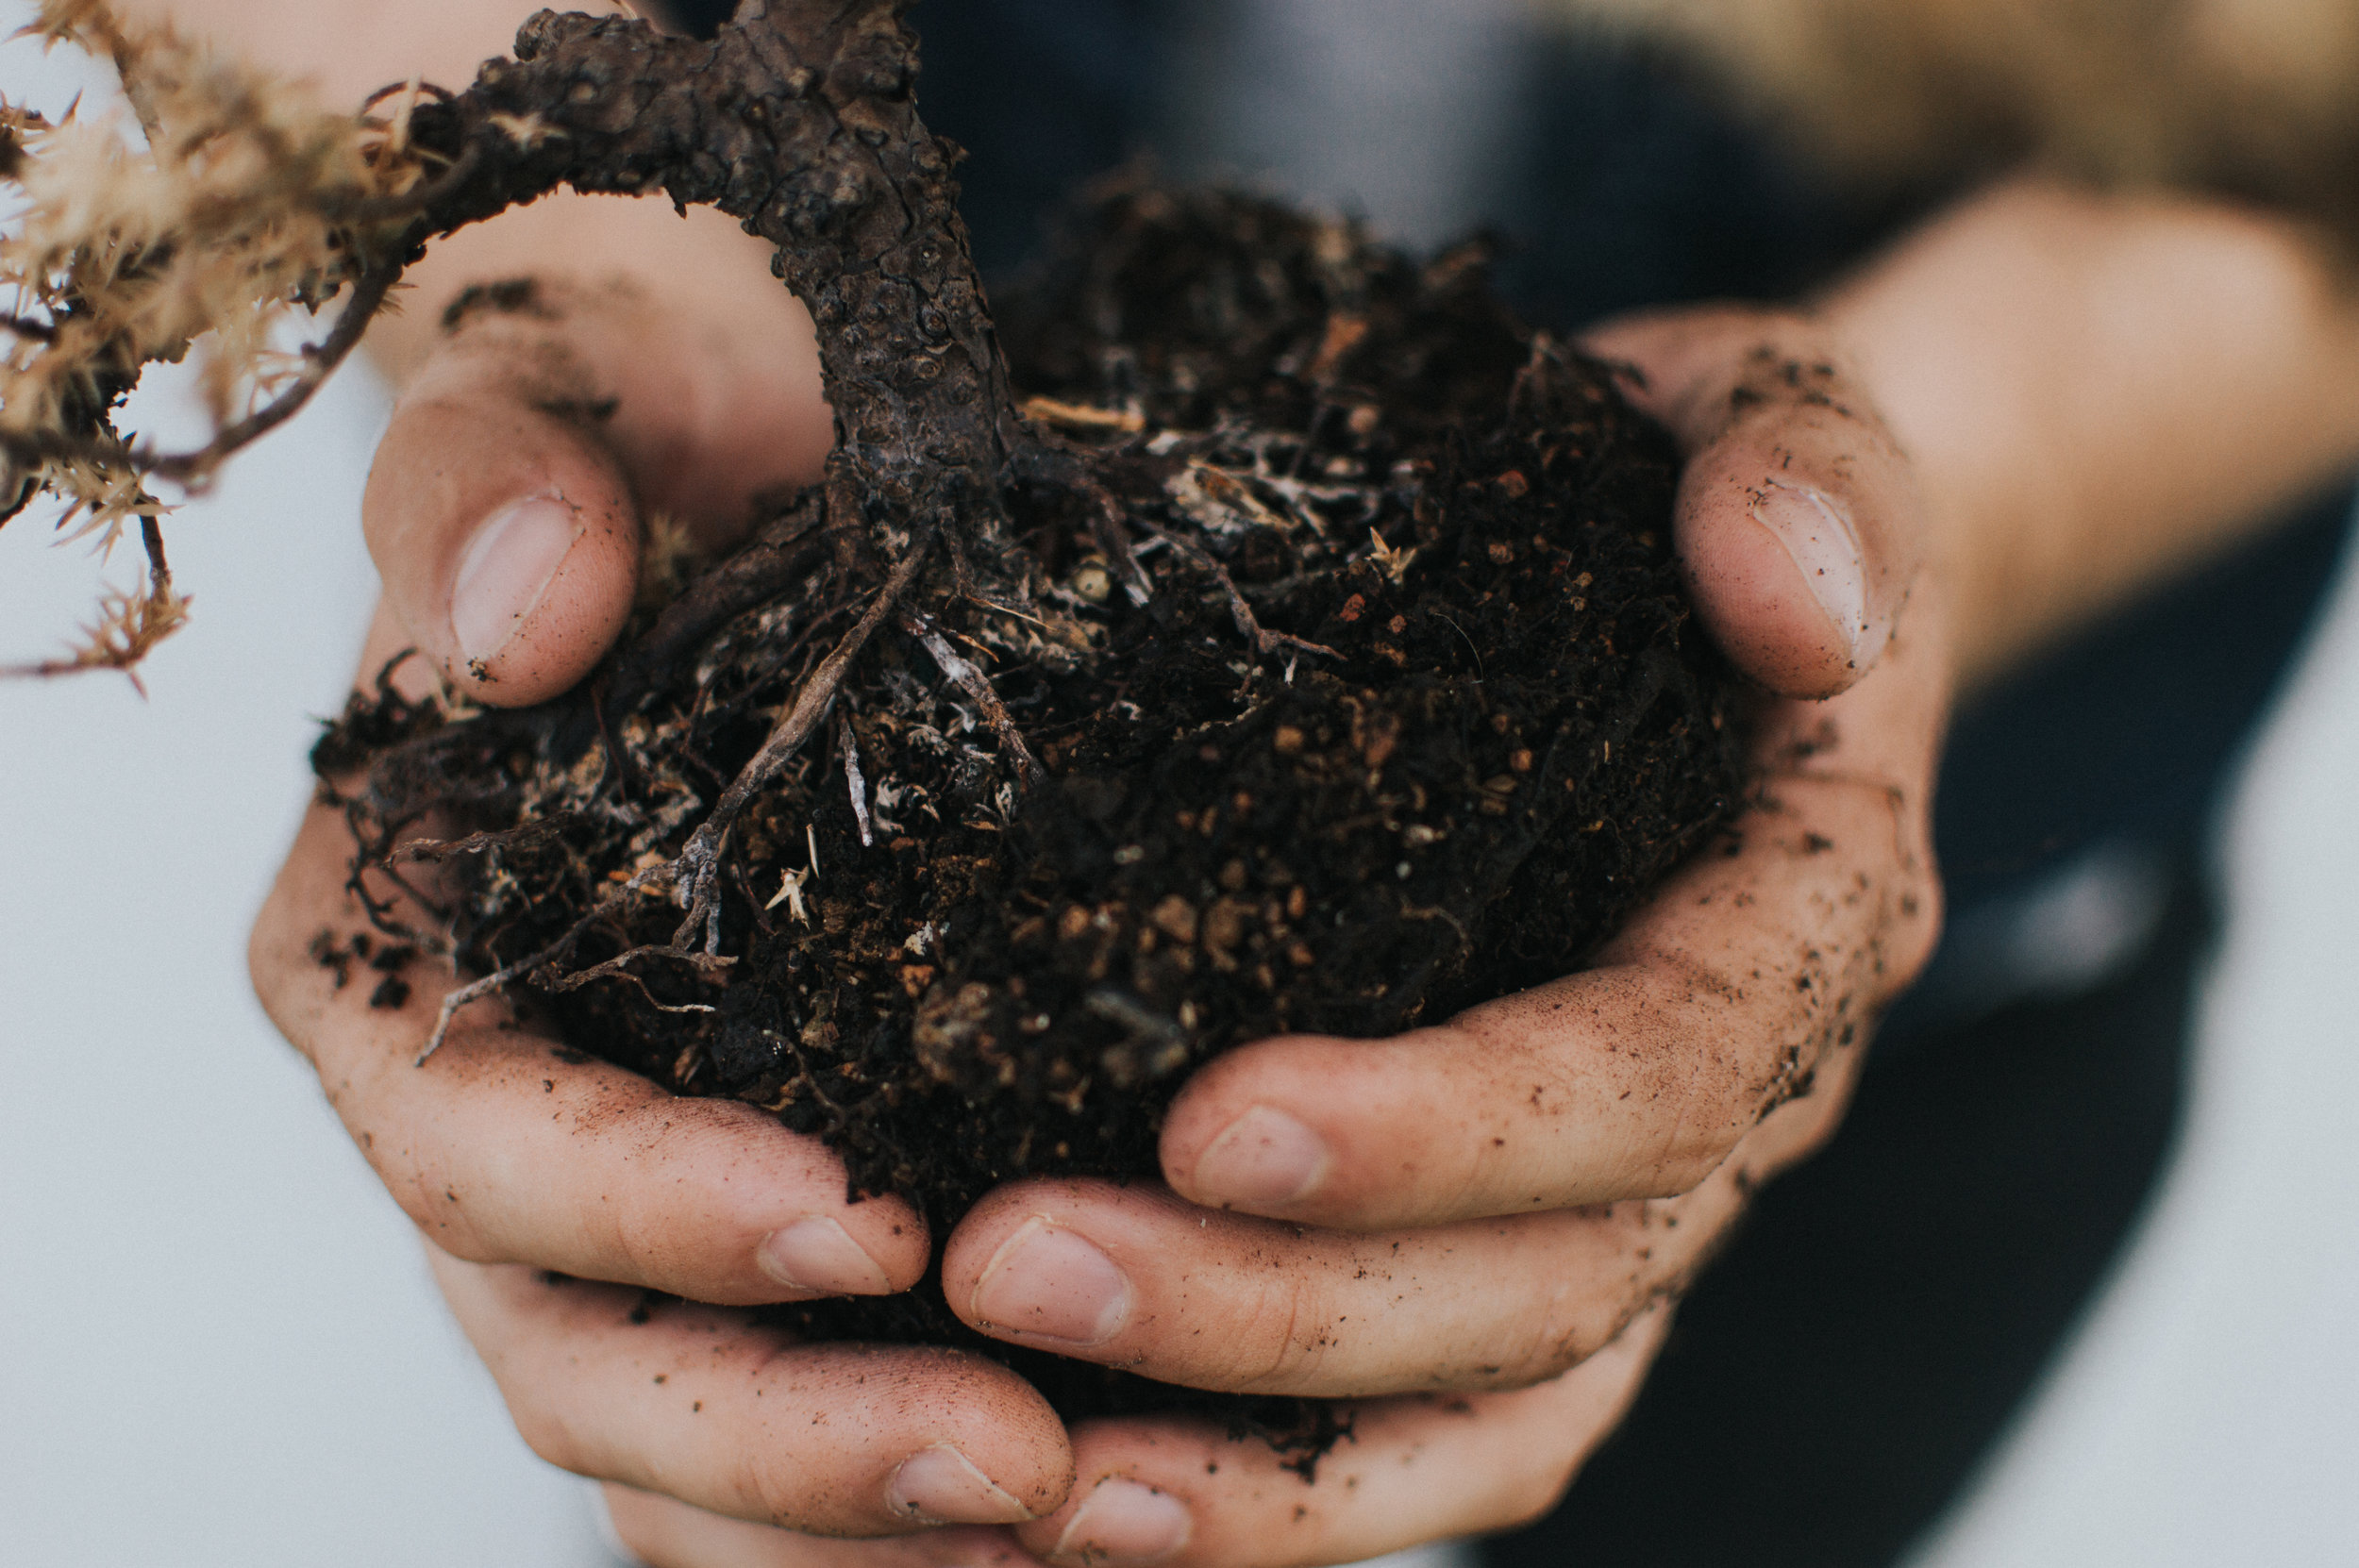 Inoculants - The soil is a network of active underground life. Earthworms, bacteria, fungi, and other insects form crucial symbiotic relationships to plants to help them grow. To promote an abundant ecosystem, we inoculate our seeds and potting soils with live beneficial fungi and bacteria.